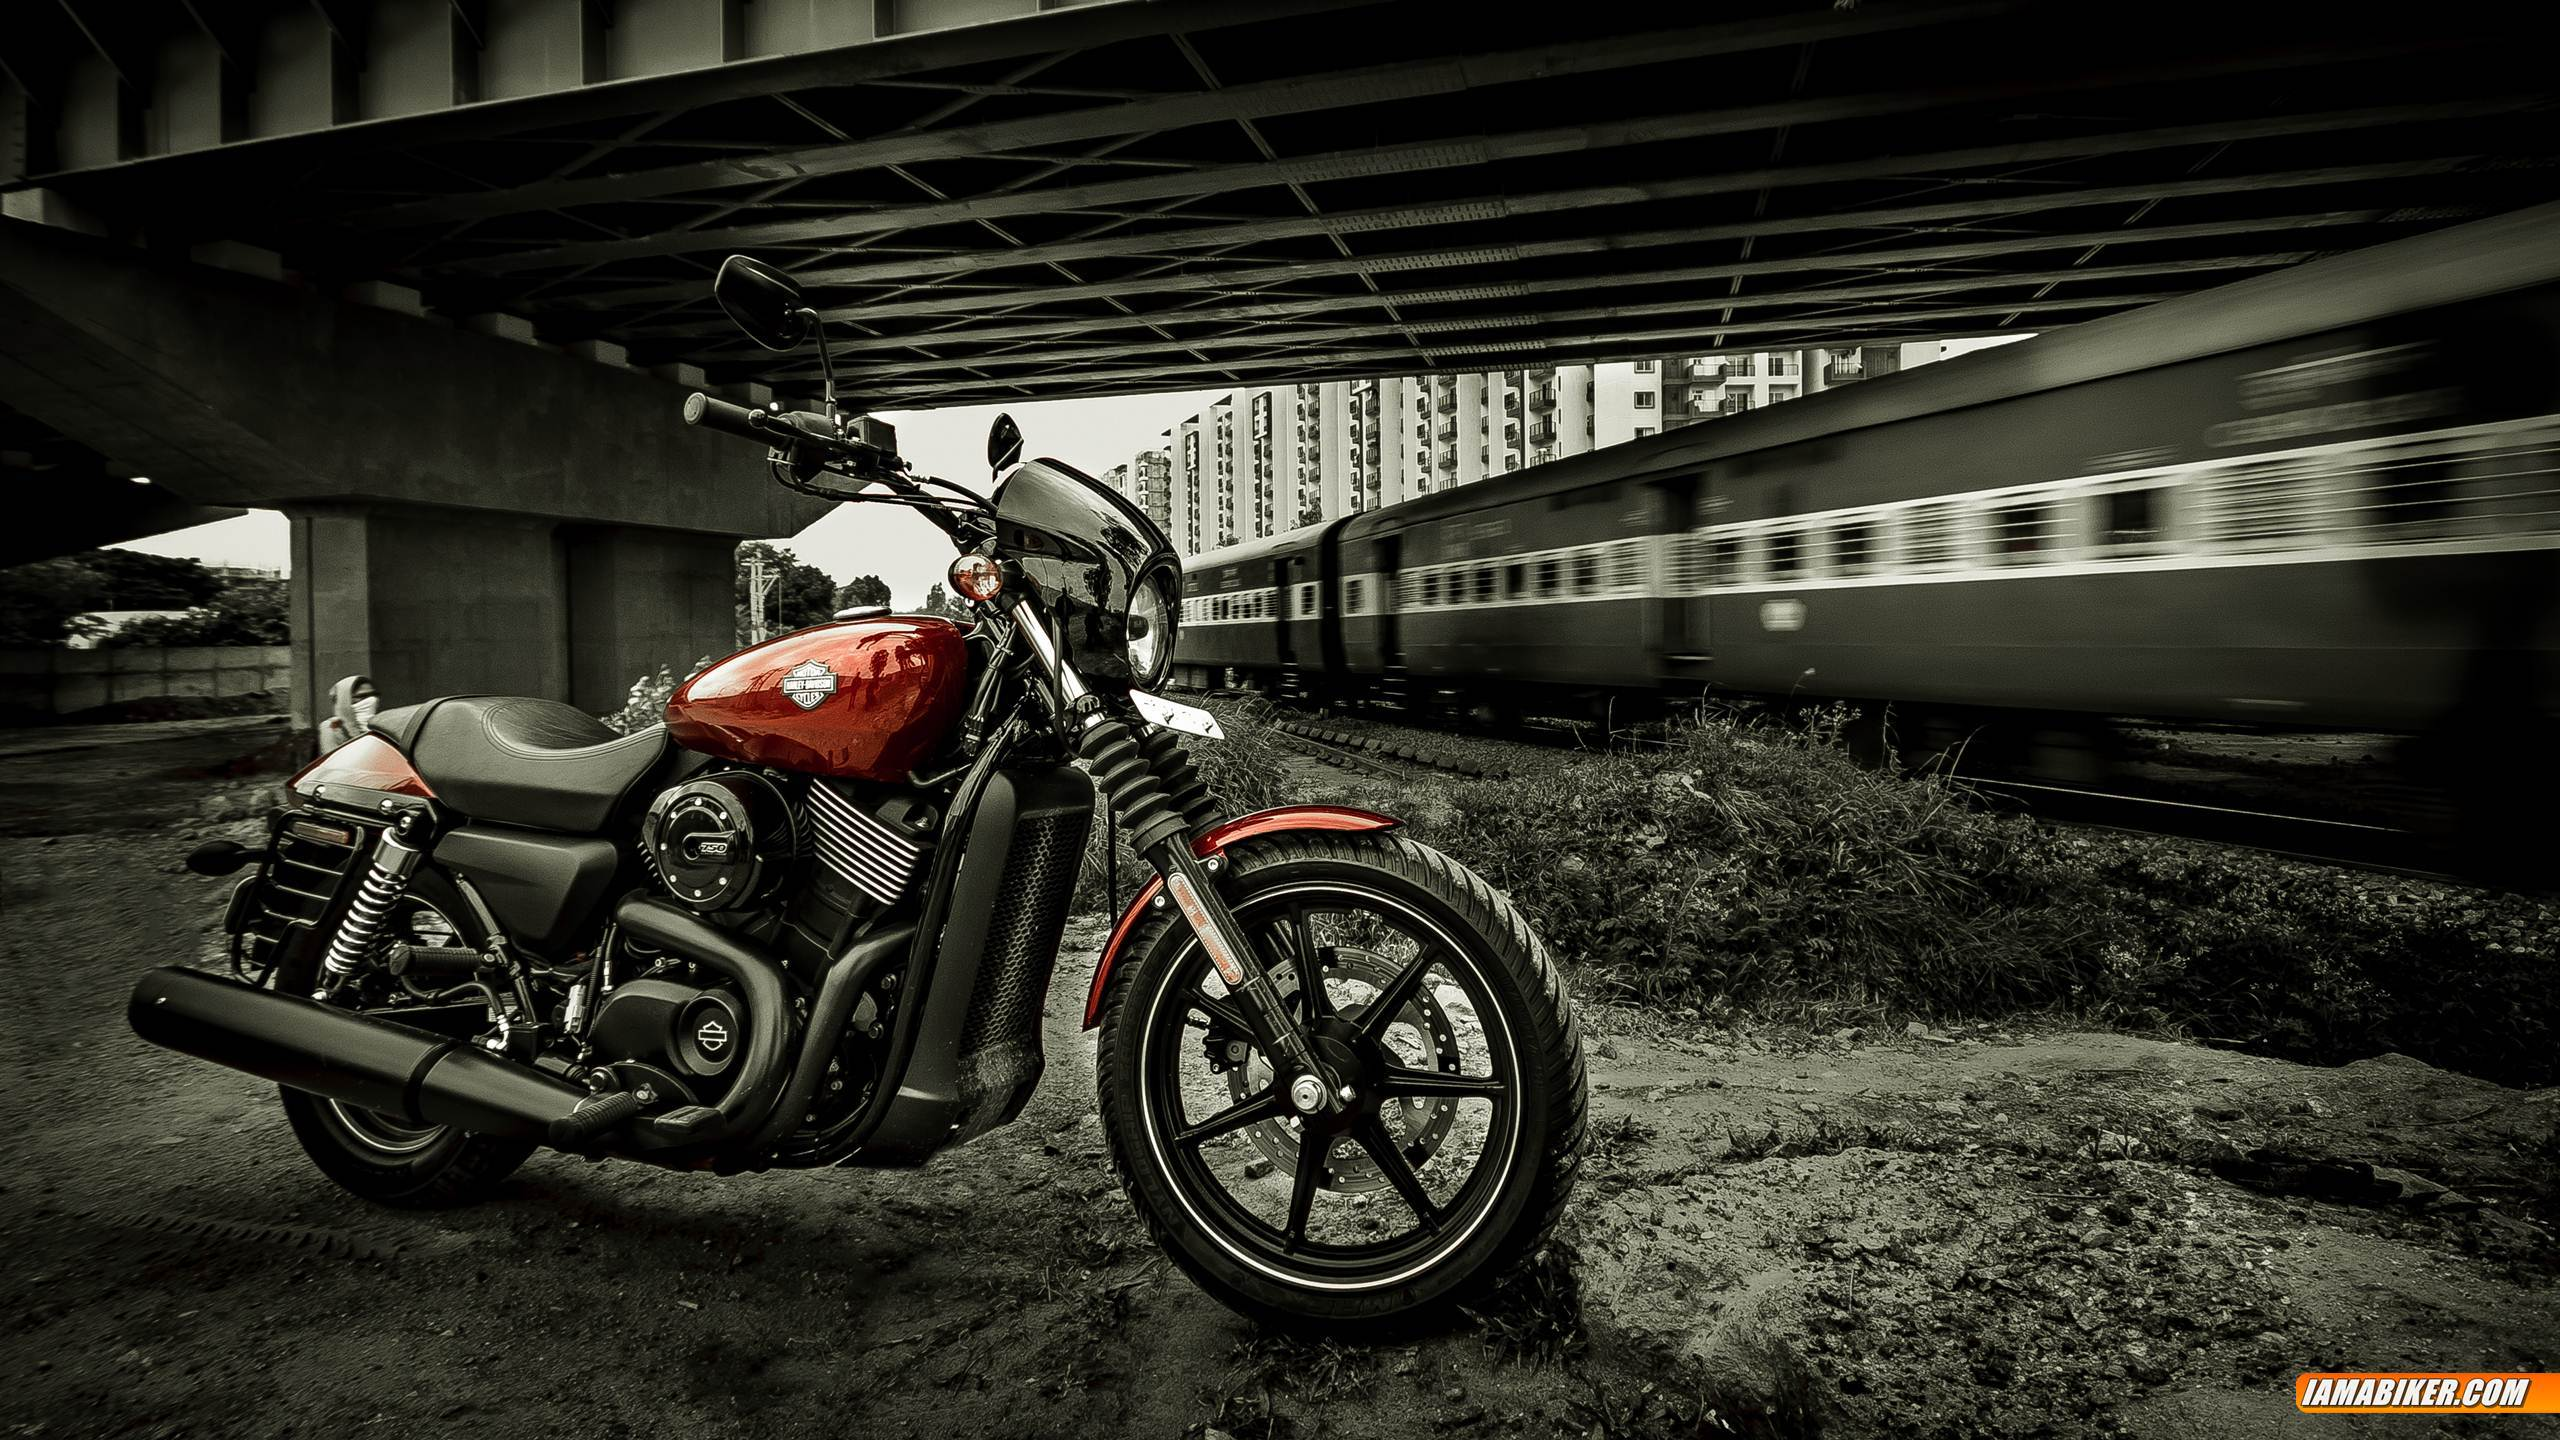 Harley Davidson Street 750 HD Wallpapers